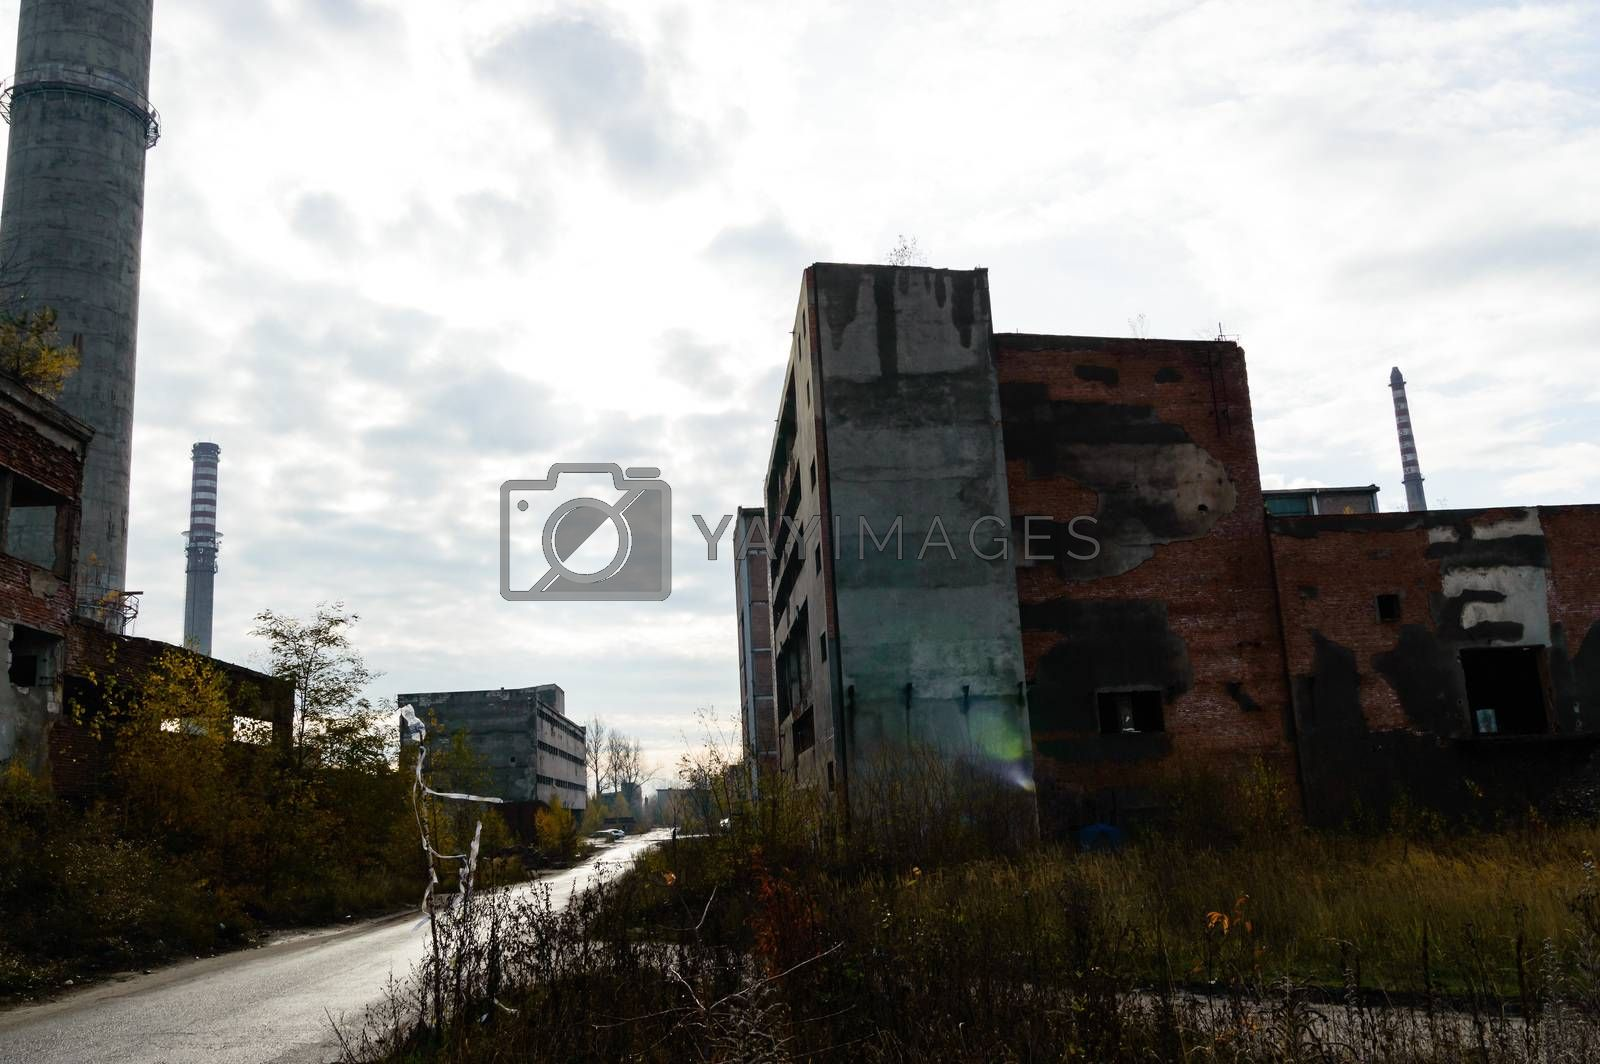 Royalty free image of factory by TSpider